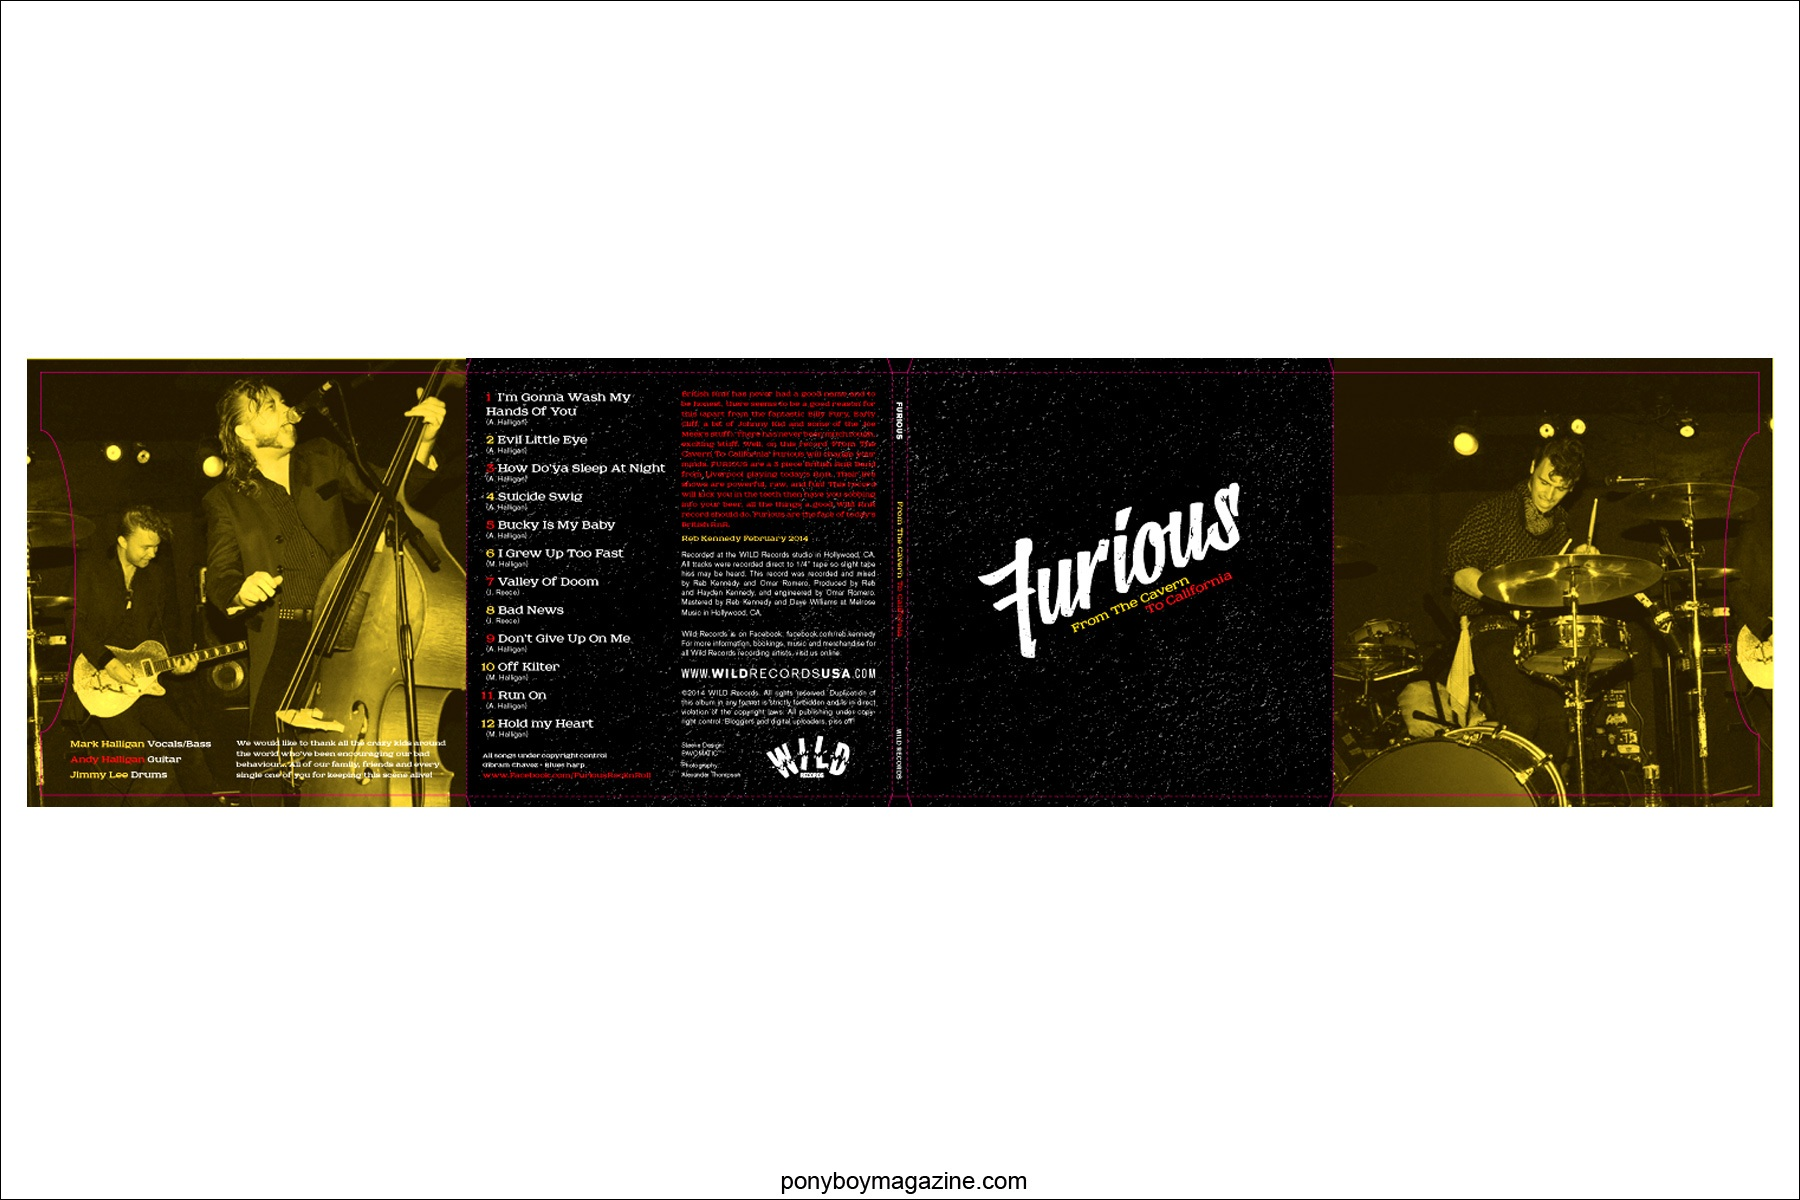 Furious band CD artwork on Wild Records, photographed by Alexander Thompson. Ponyboy Magazine.